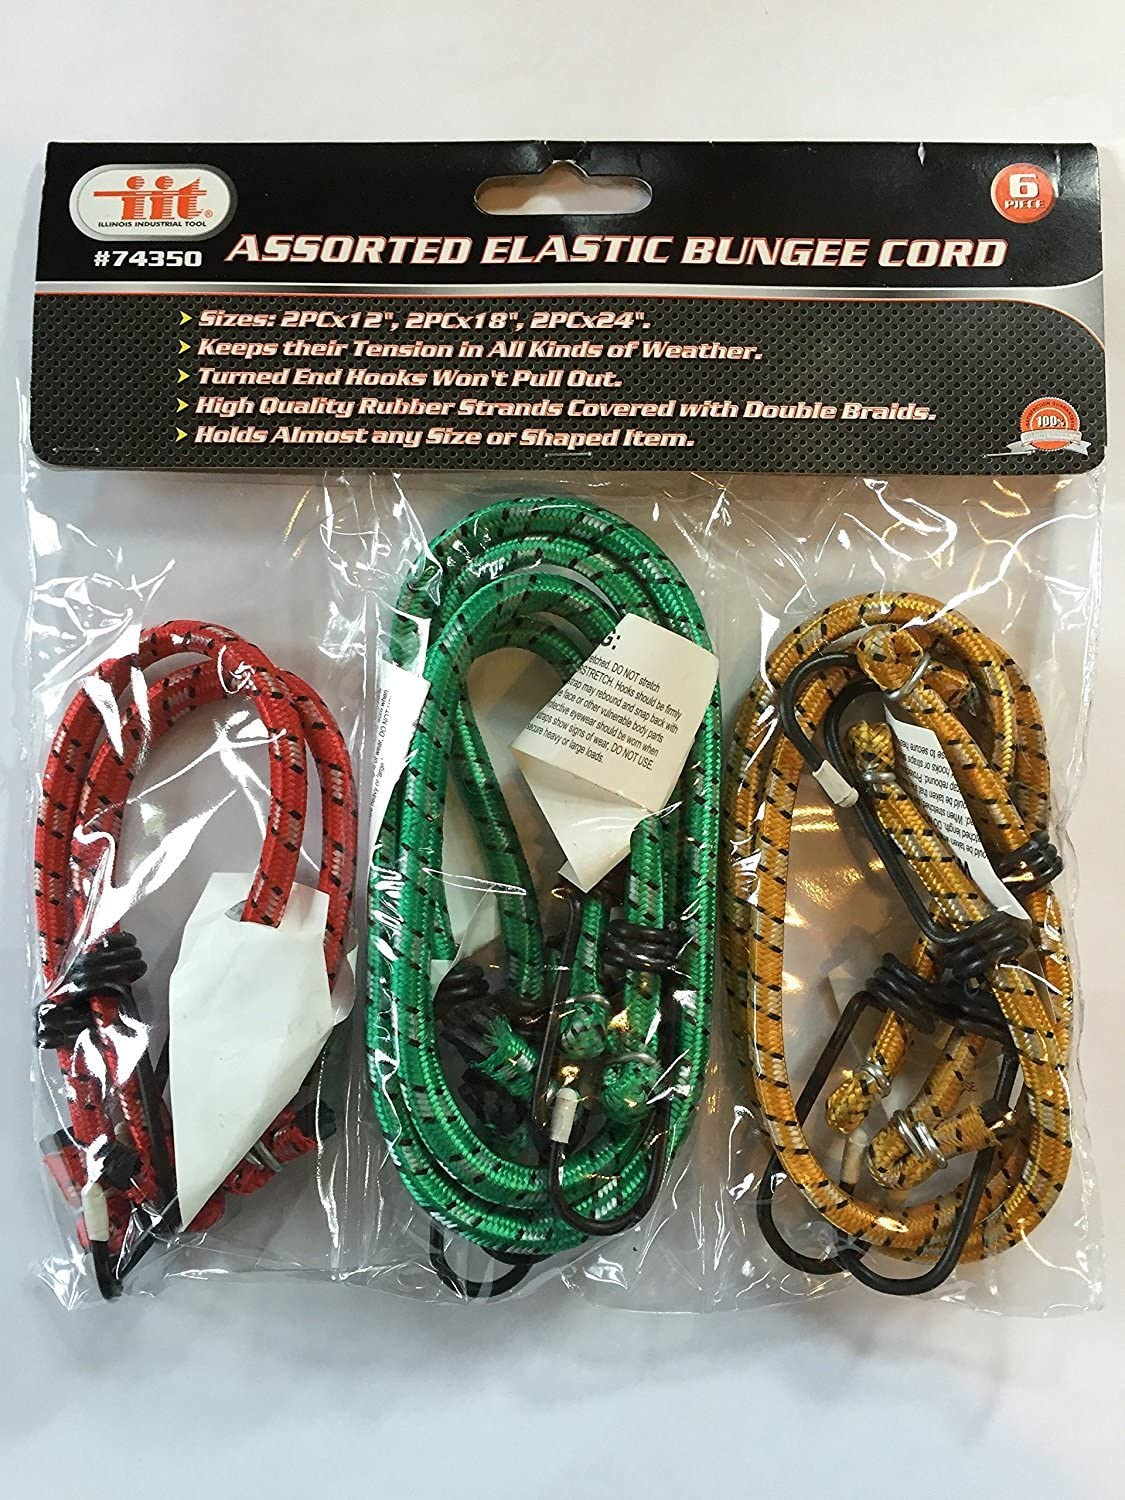 Assorted Bungee Cords for Trailers, Trucks, Motorcycles, or Cars - 6 pcs